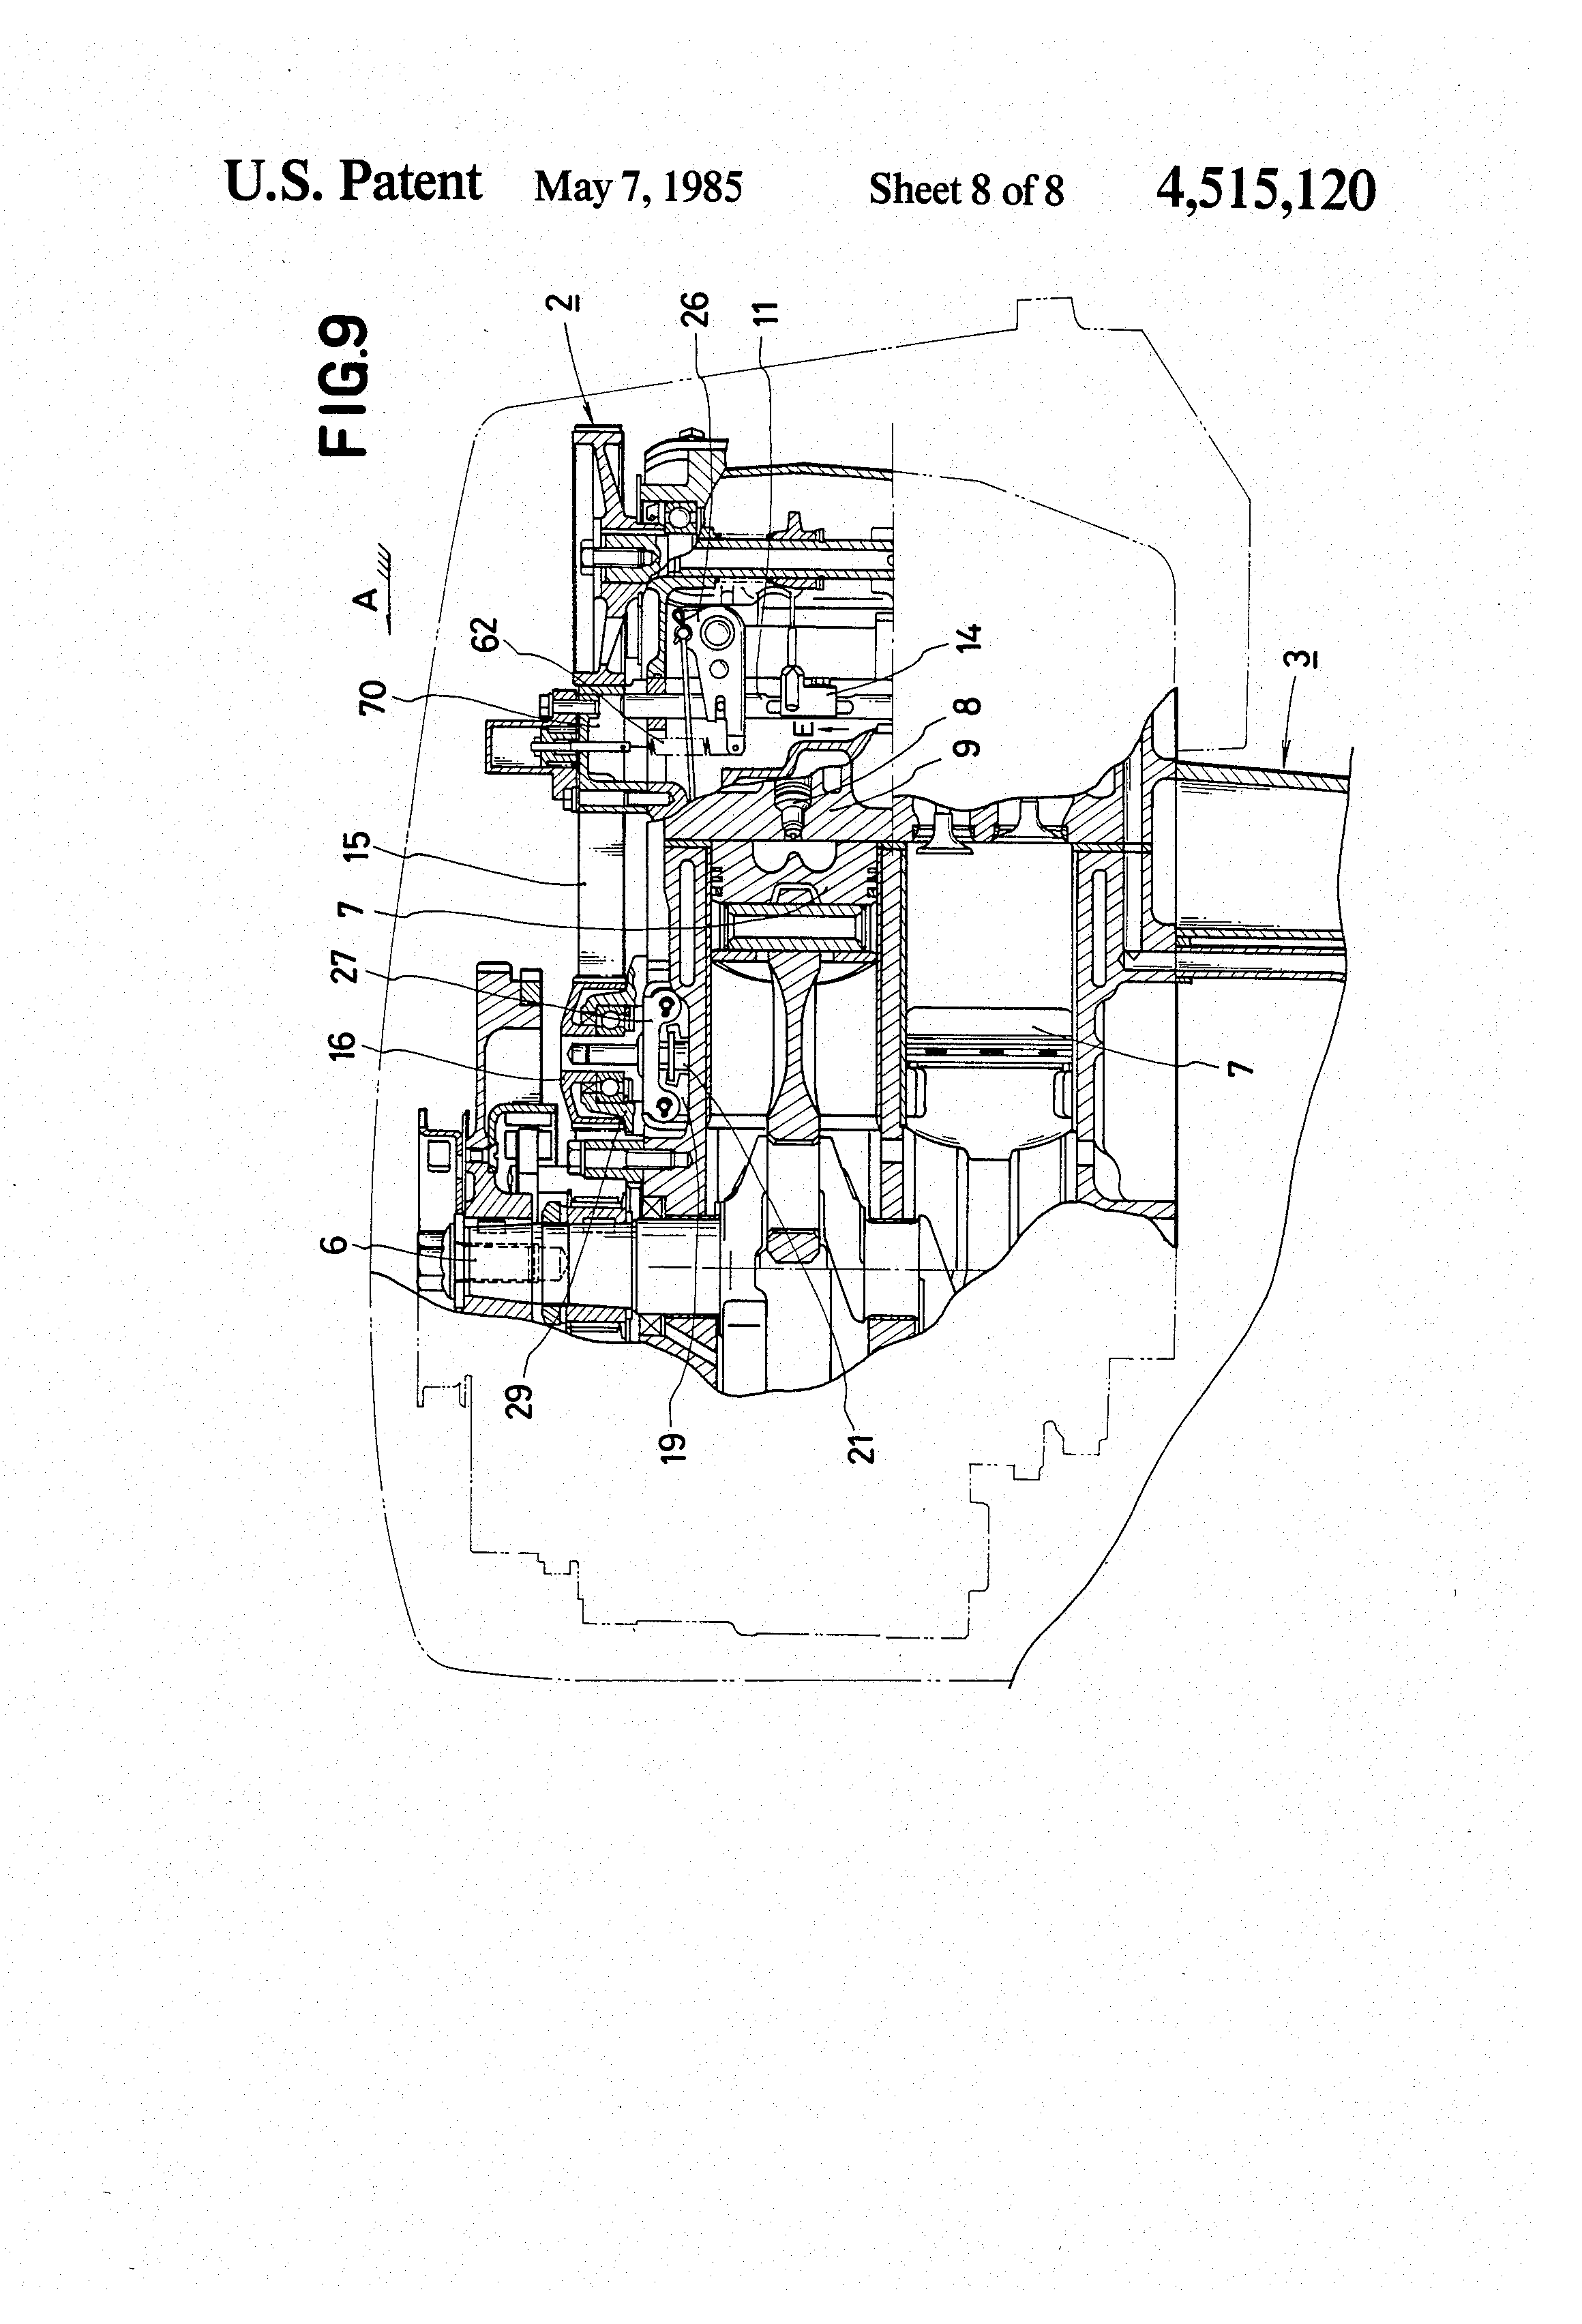 Combustion Engine Lever : Patent us governor for internal combustion engine